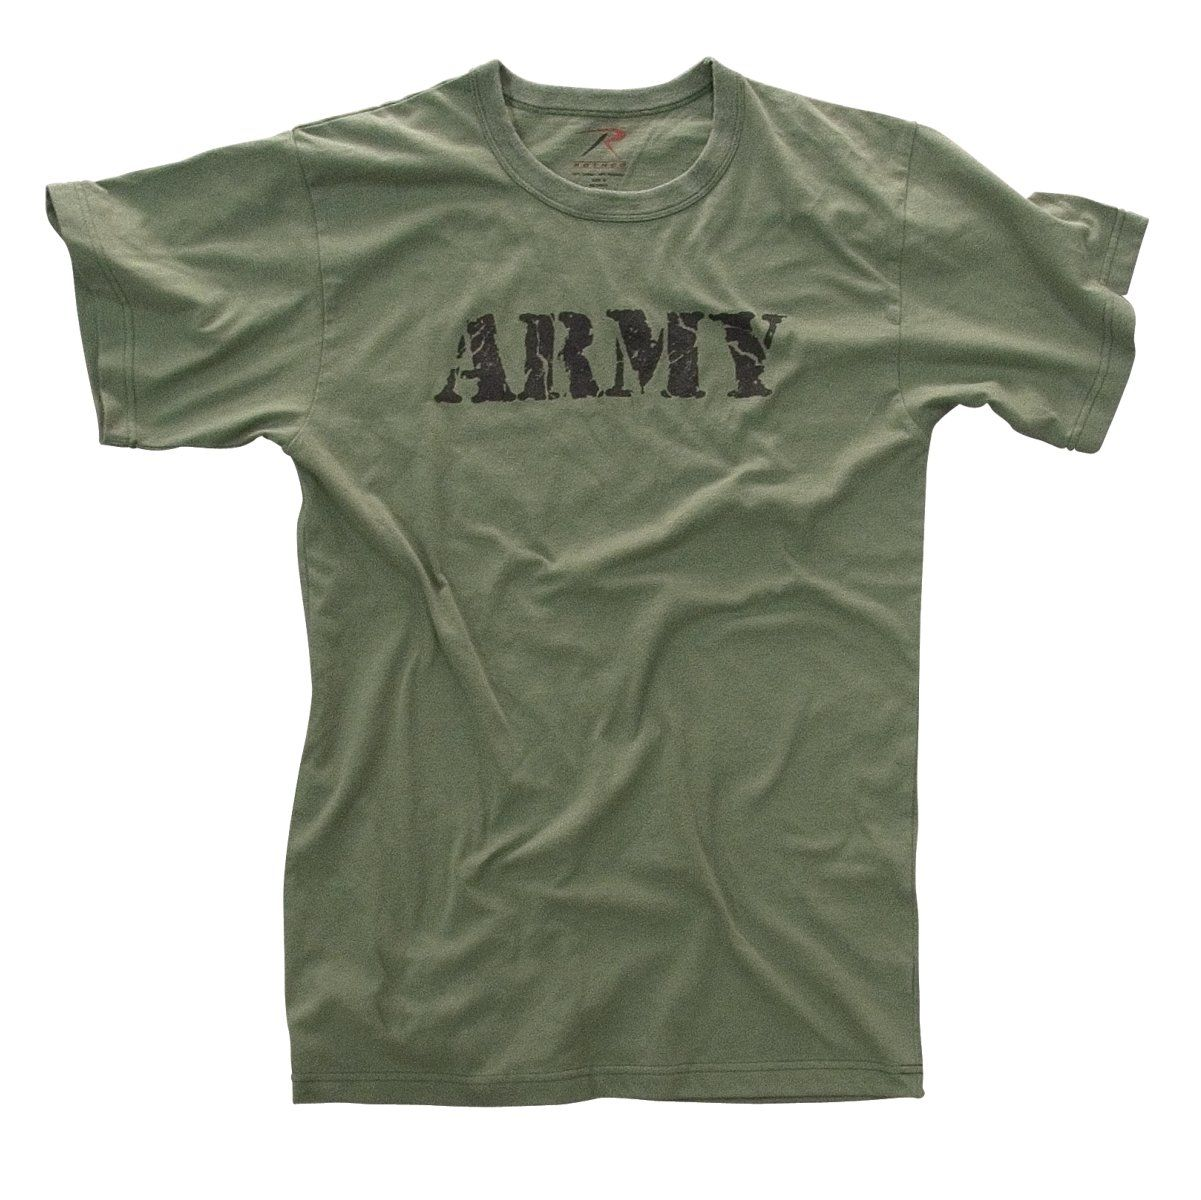 Military Shirts, Sweatshirts, Jackets and more!